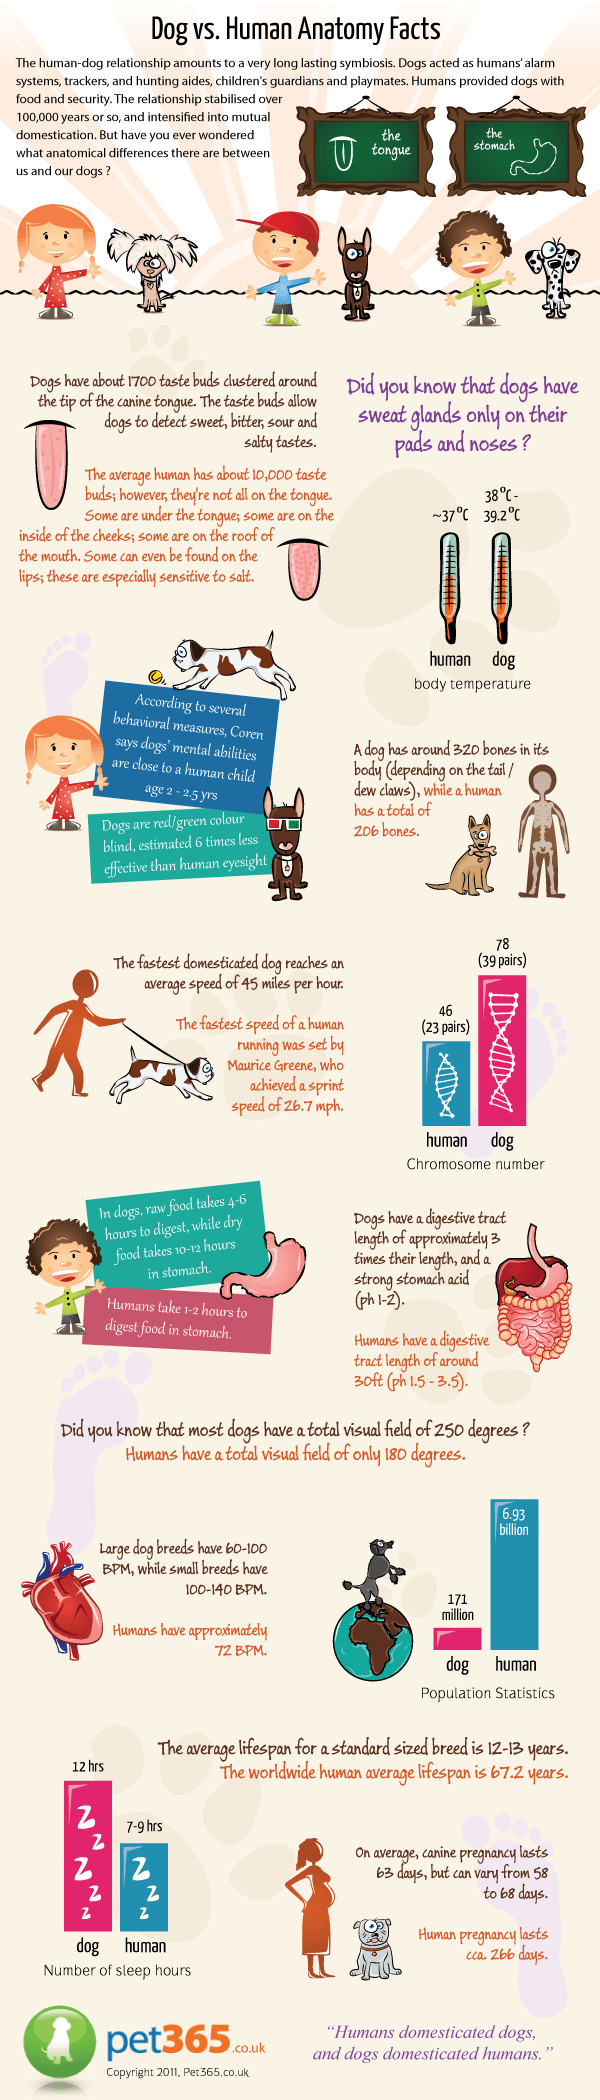 dog-anatomy-infographic